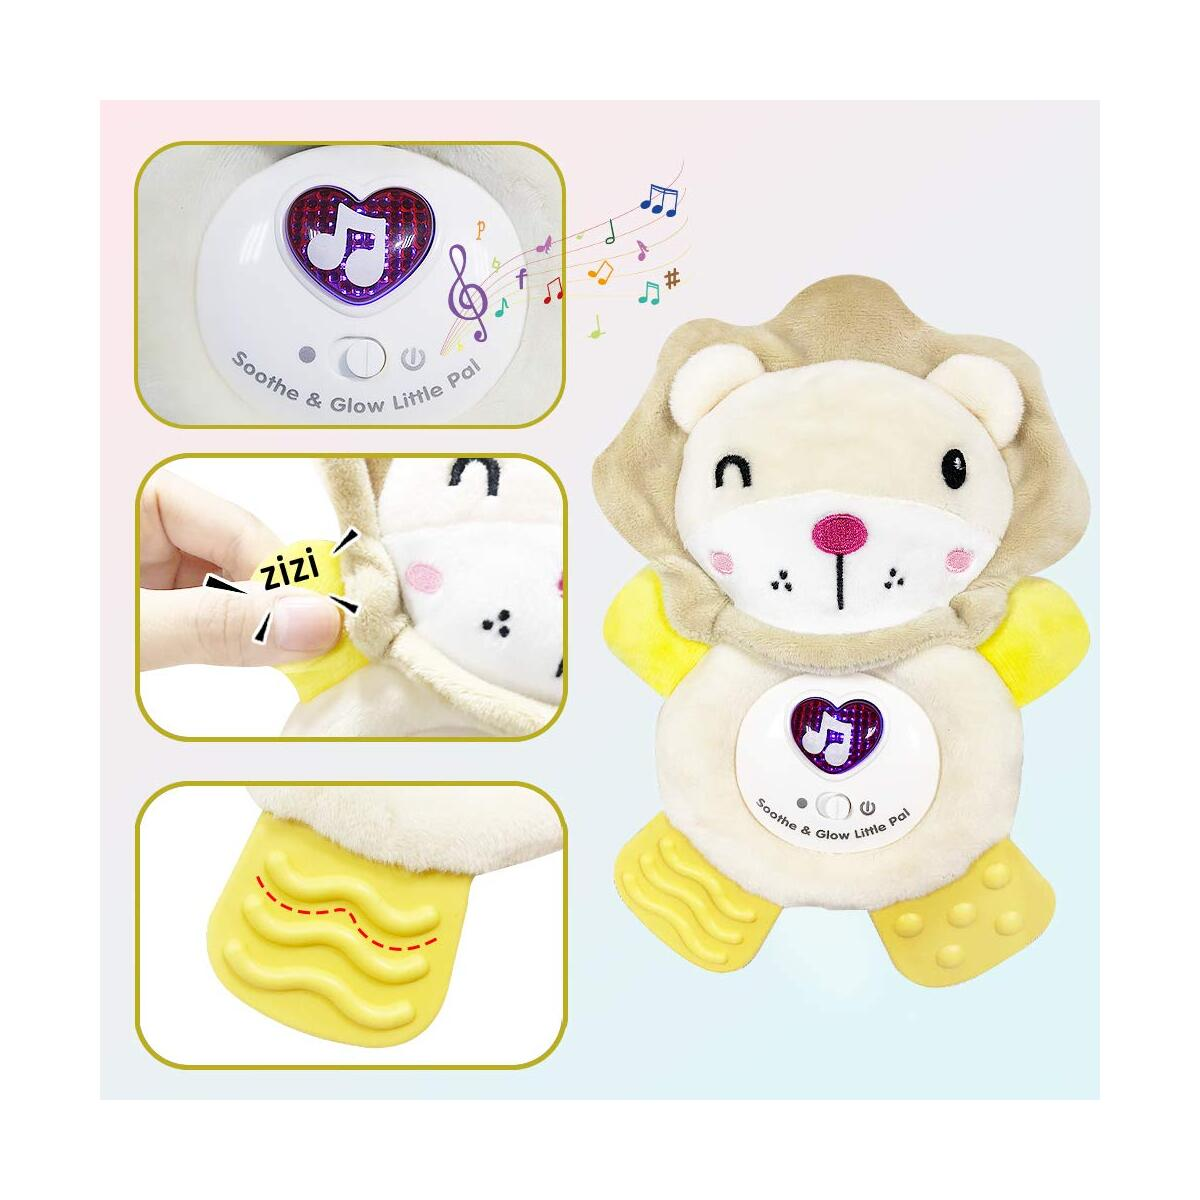 WISHTIME Baby Activity and Teething Toy with Multi-Sensory Rattle and Textures, Infant Huggable Lion Teether, Soft Comfort Plush Toys